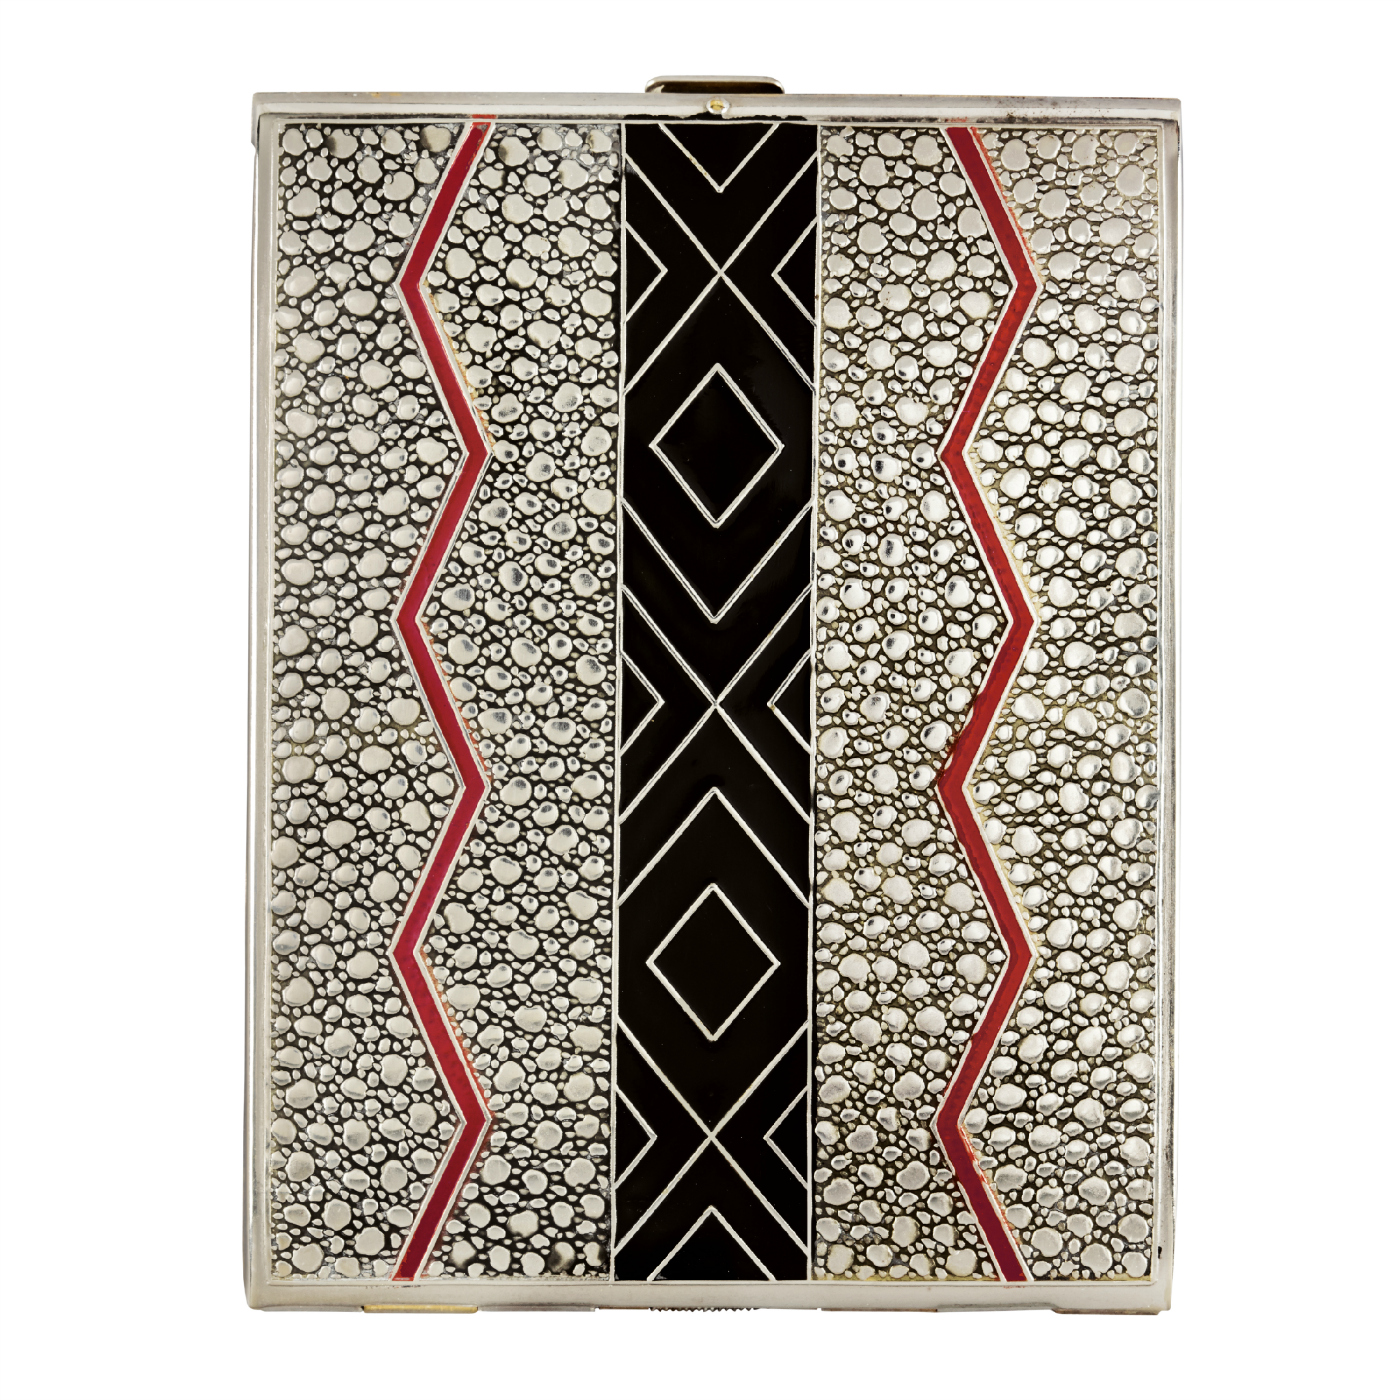 Press Easy cigarette case (United States, 1929), red and black enamel on embossed metal, designed by Alfred Reilly, and produced by Evans Case Company, Attleboro, Massachusetts (© Rodney and Diana Capstick-Dale)